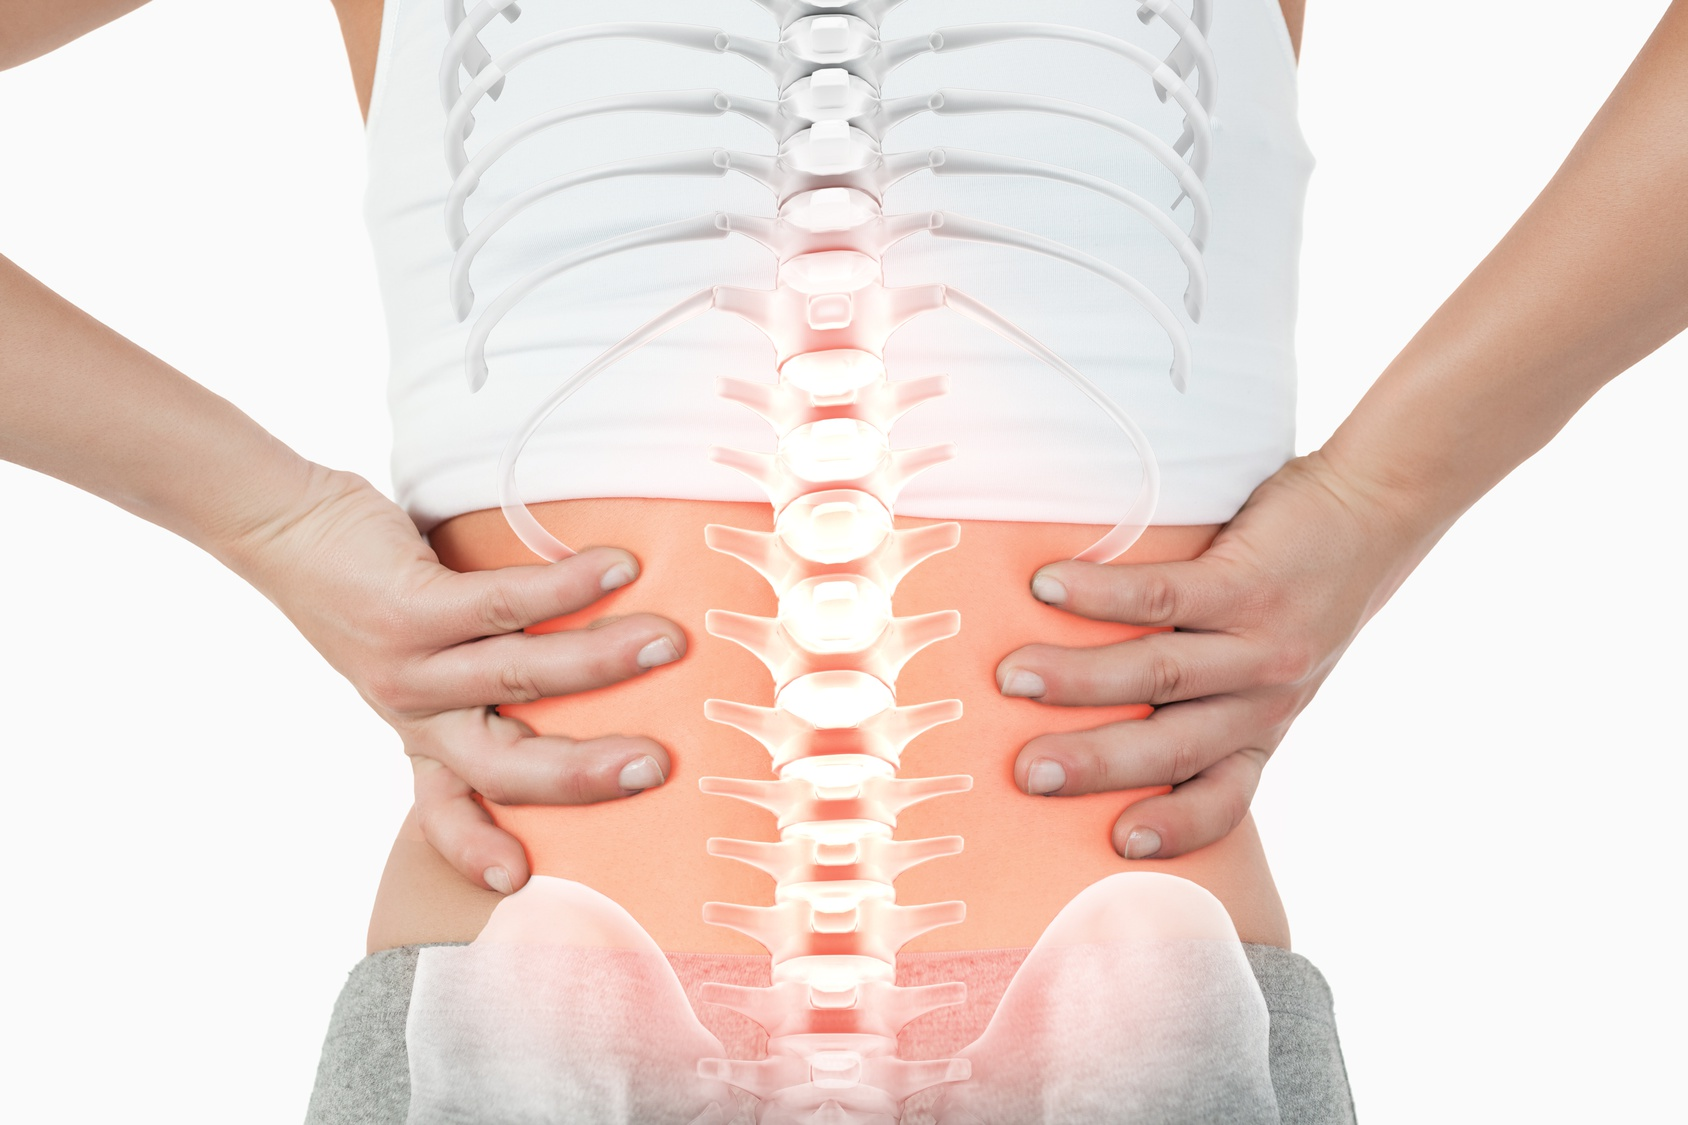 Back pain and filing a legal claim